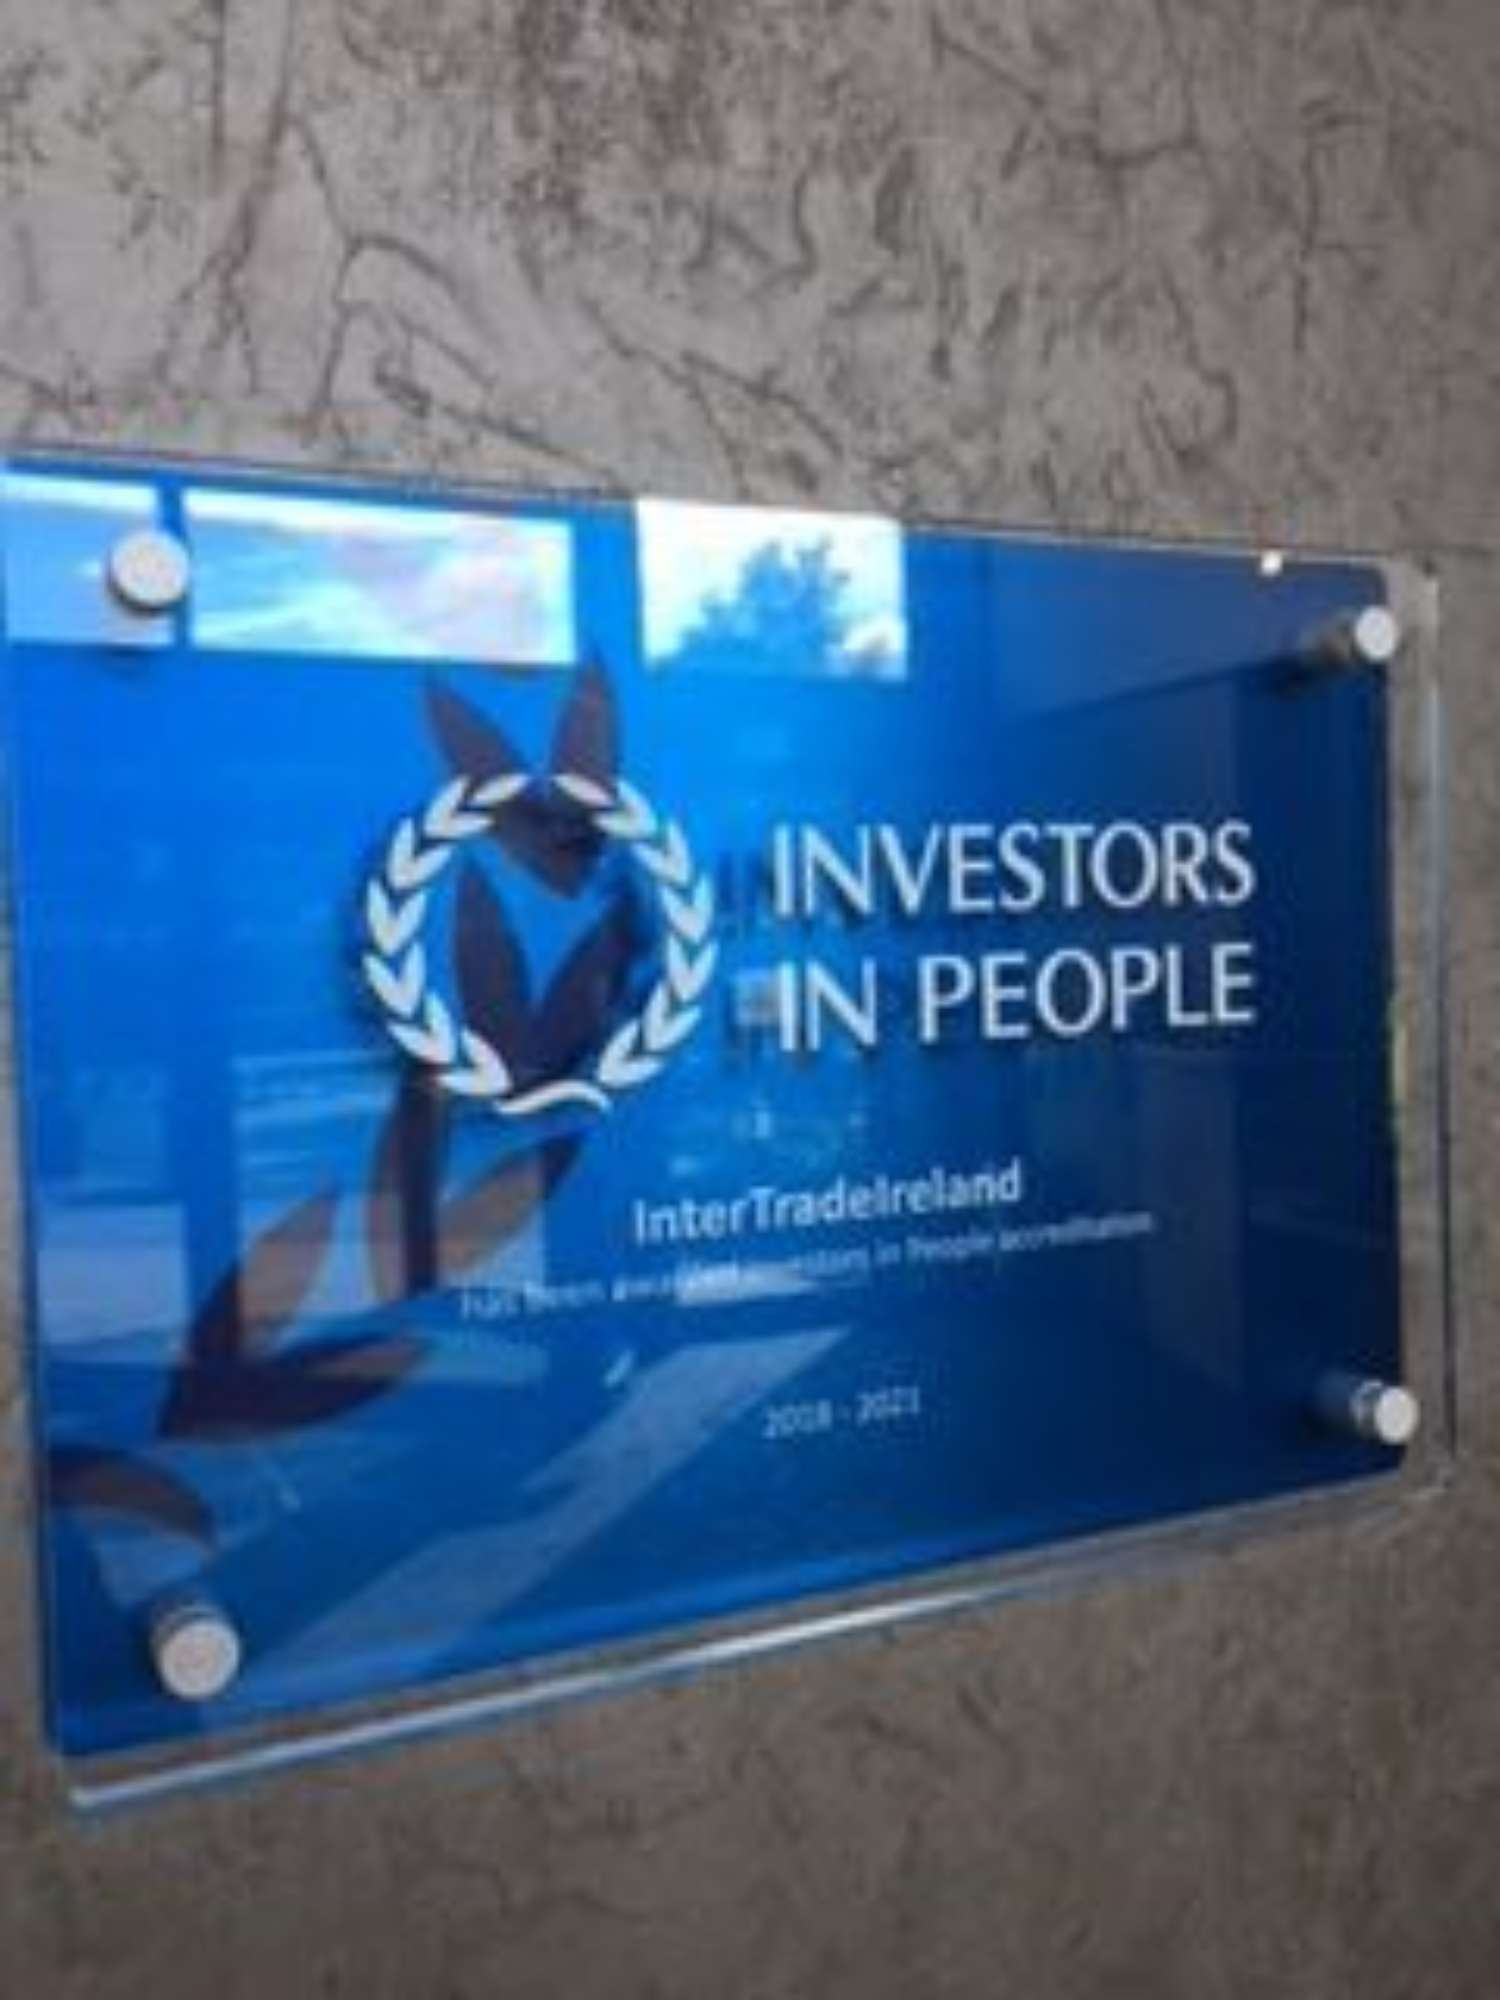 Investors in people Plaque